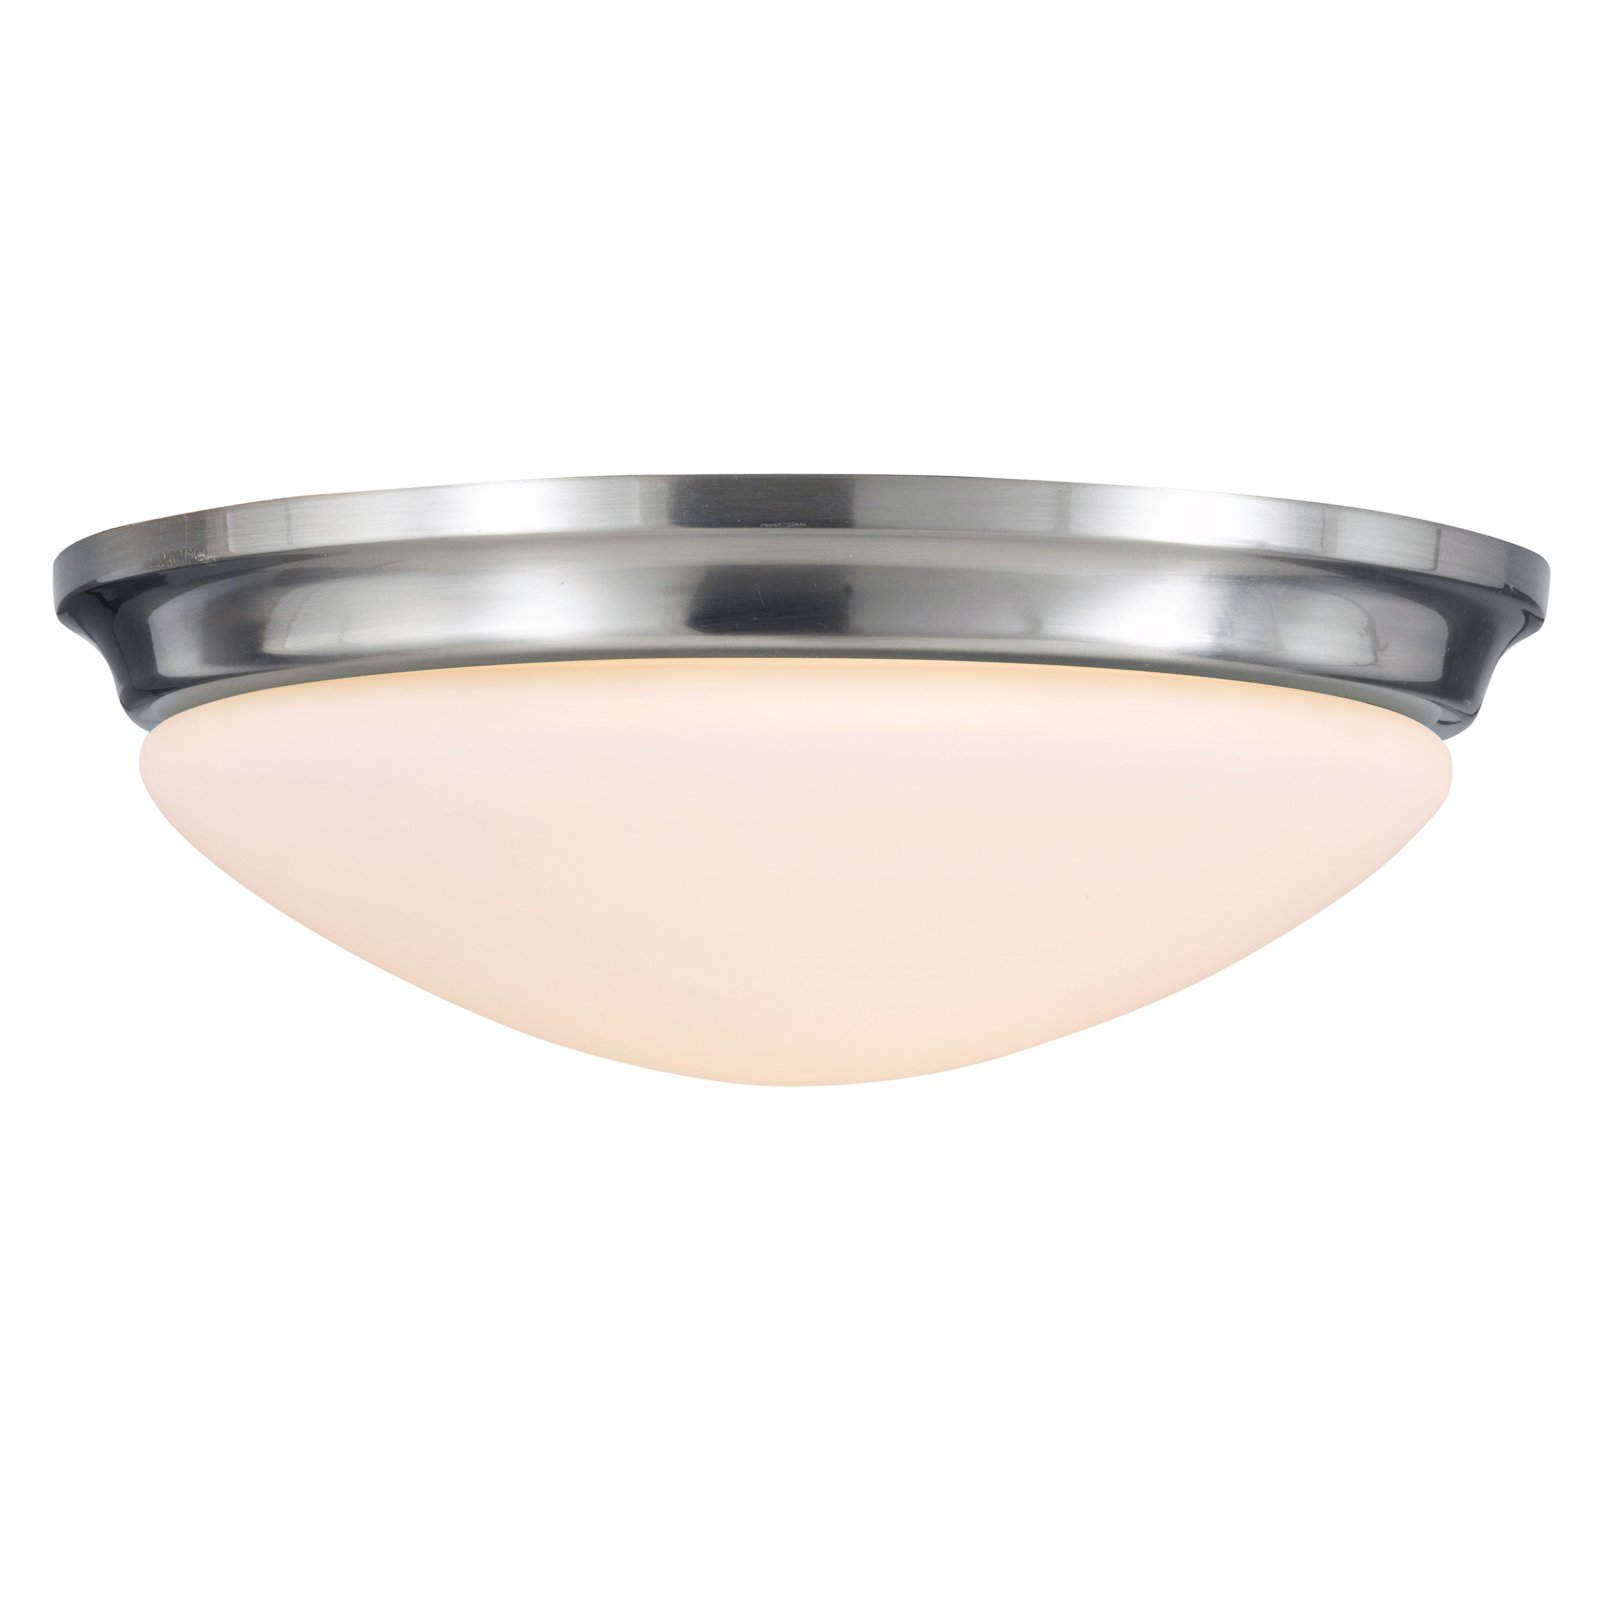 Feiss Barrington Ceiling Light 14W in. Brushed Steel by Murray Feiss